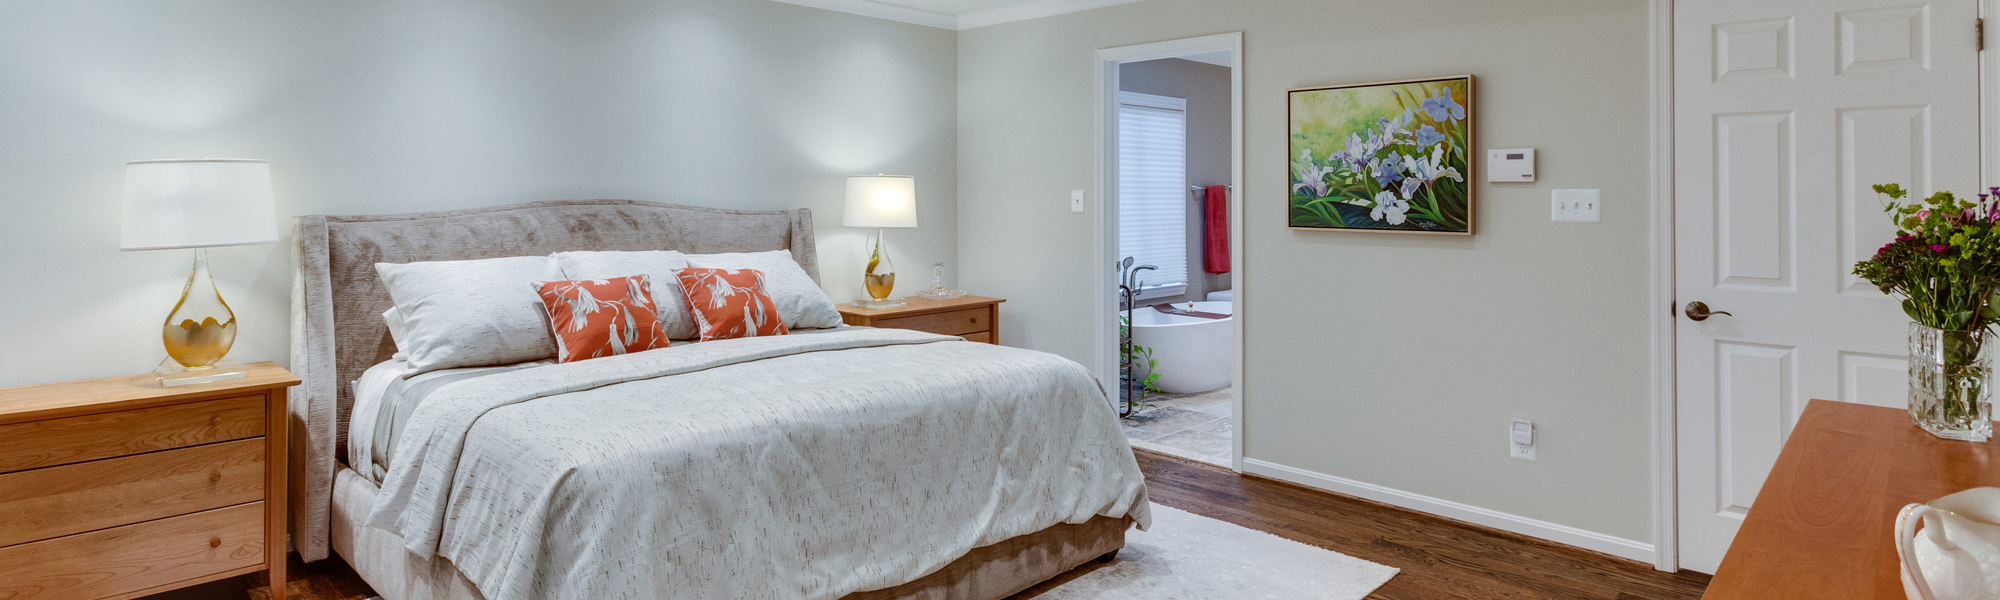 Universal Design Master Suite Renovation in McLean VA